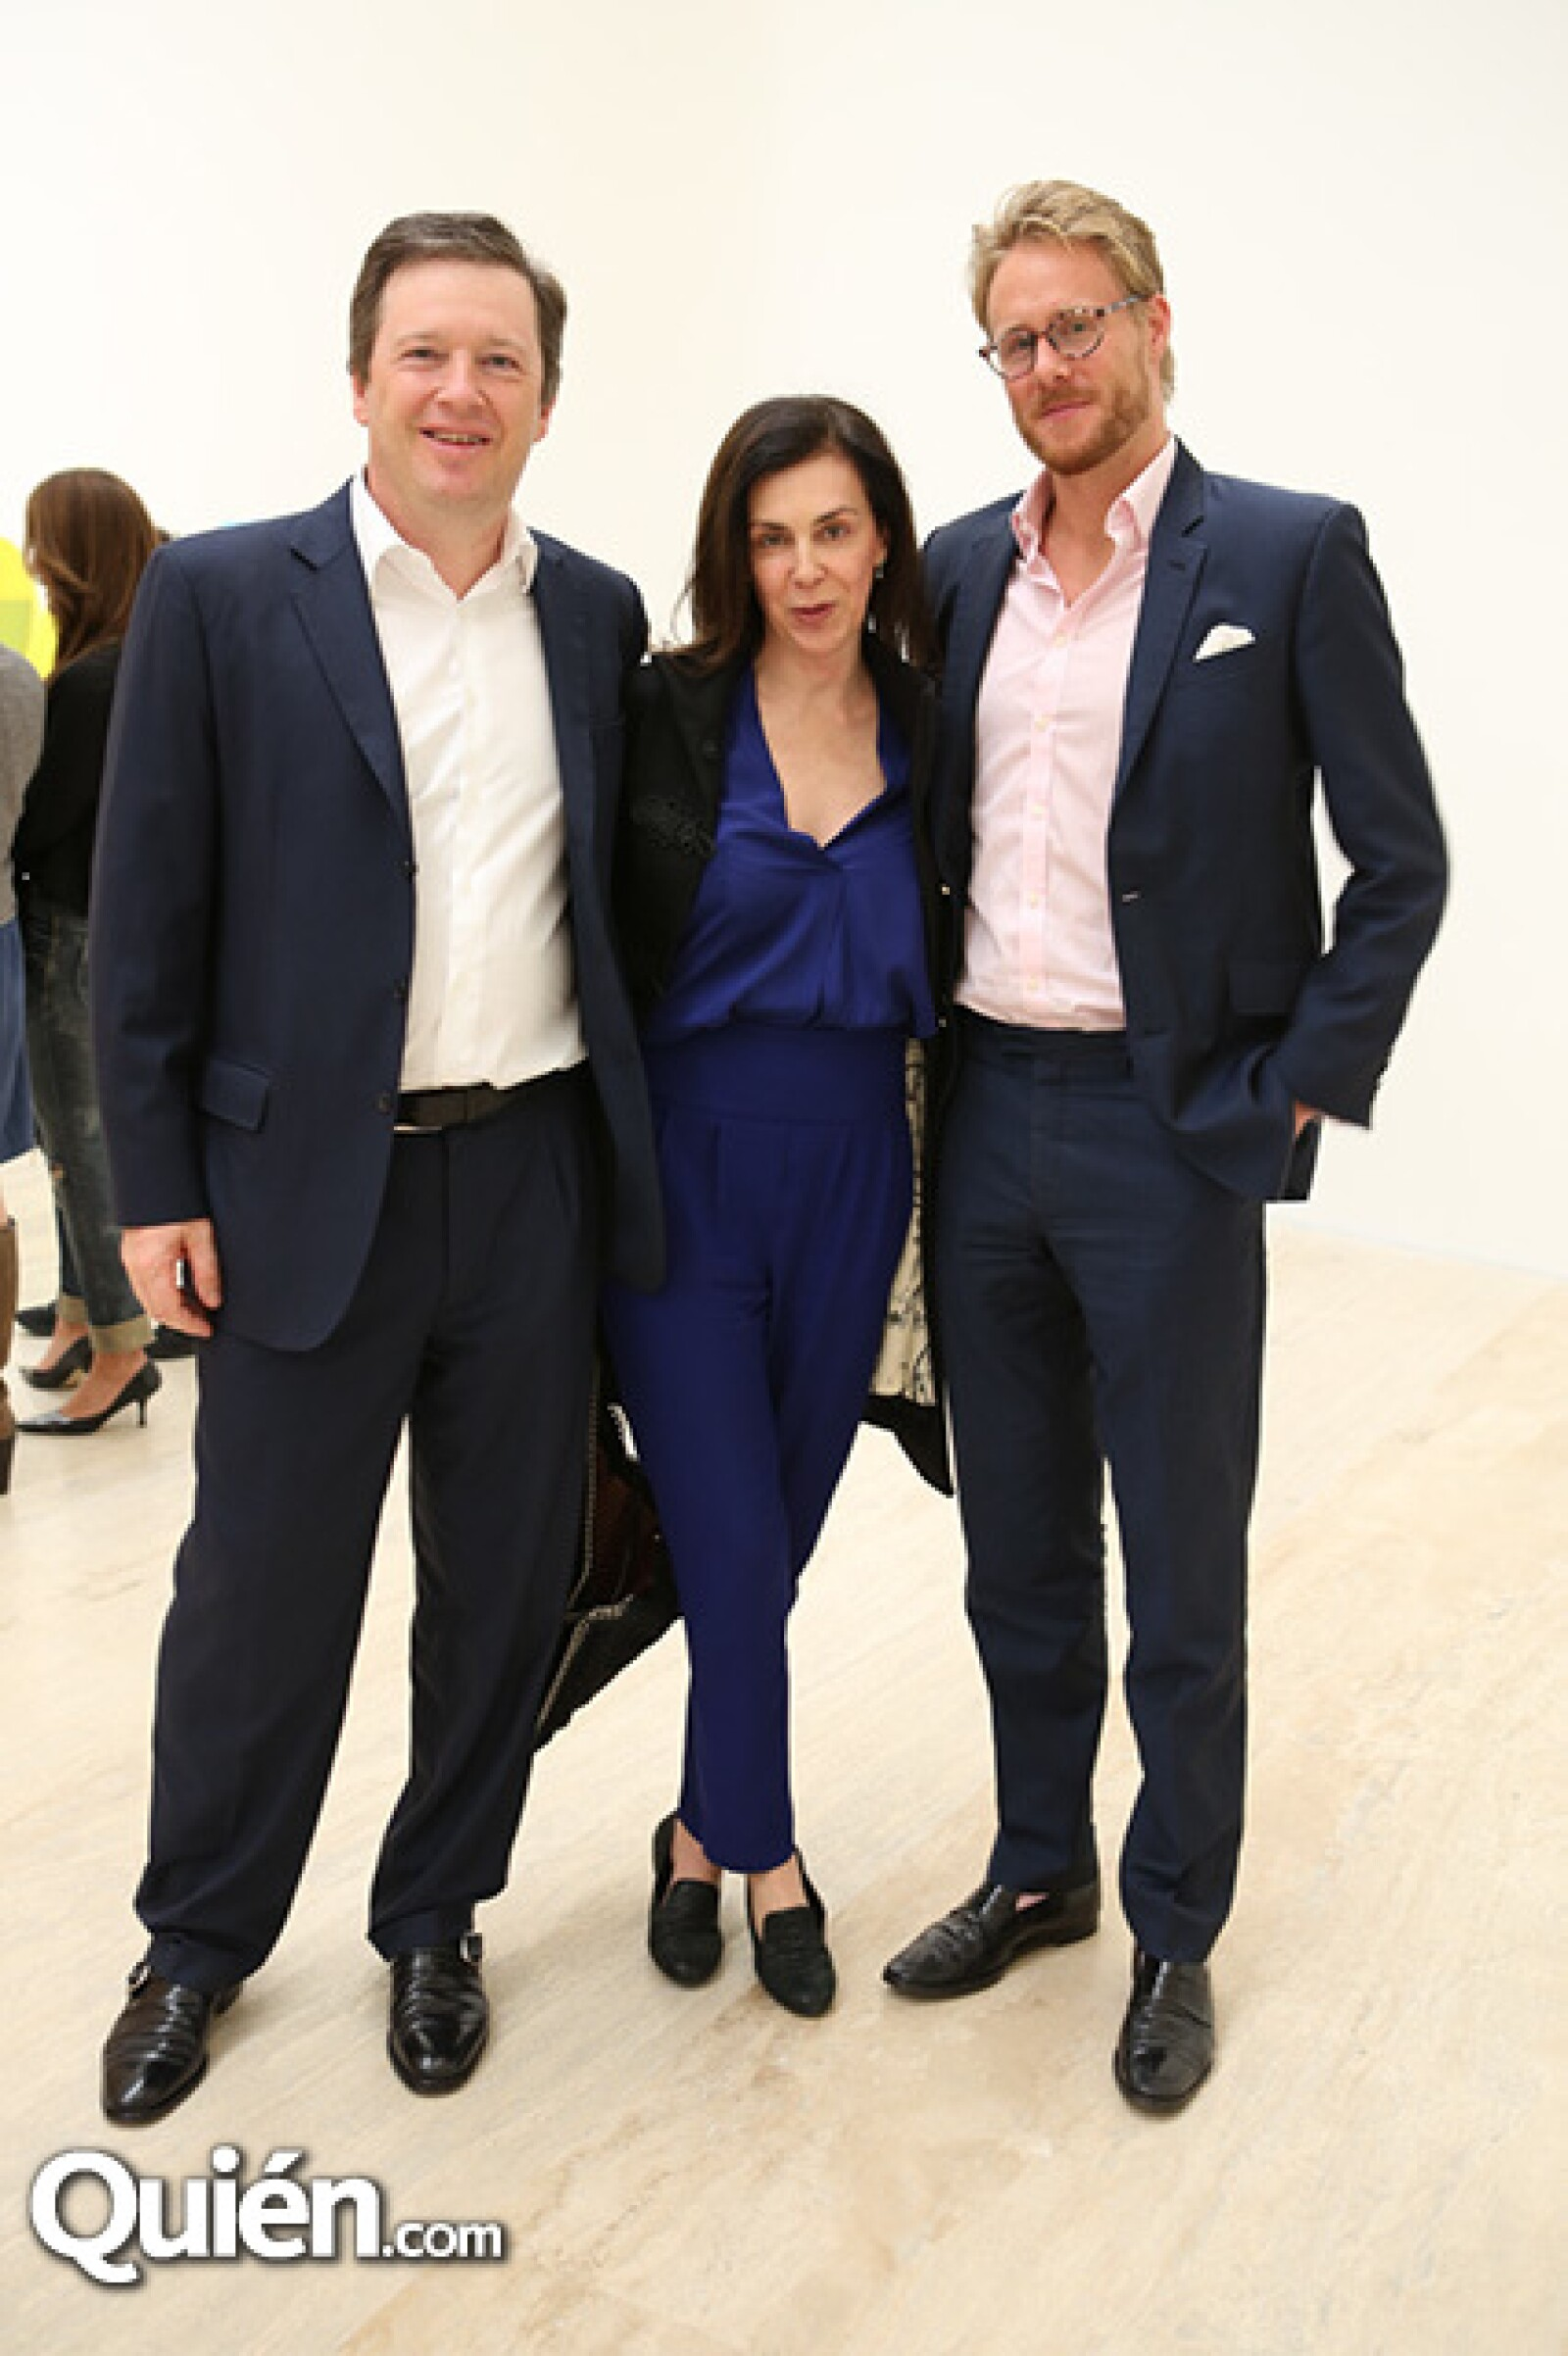 Damian Fraser,Claudia Marcucetti y Harry Beamish